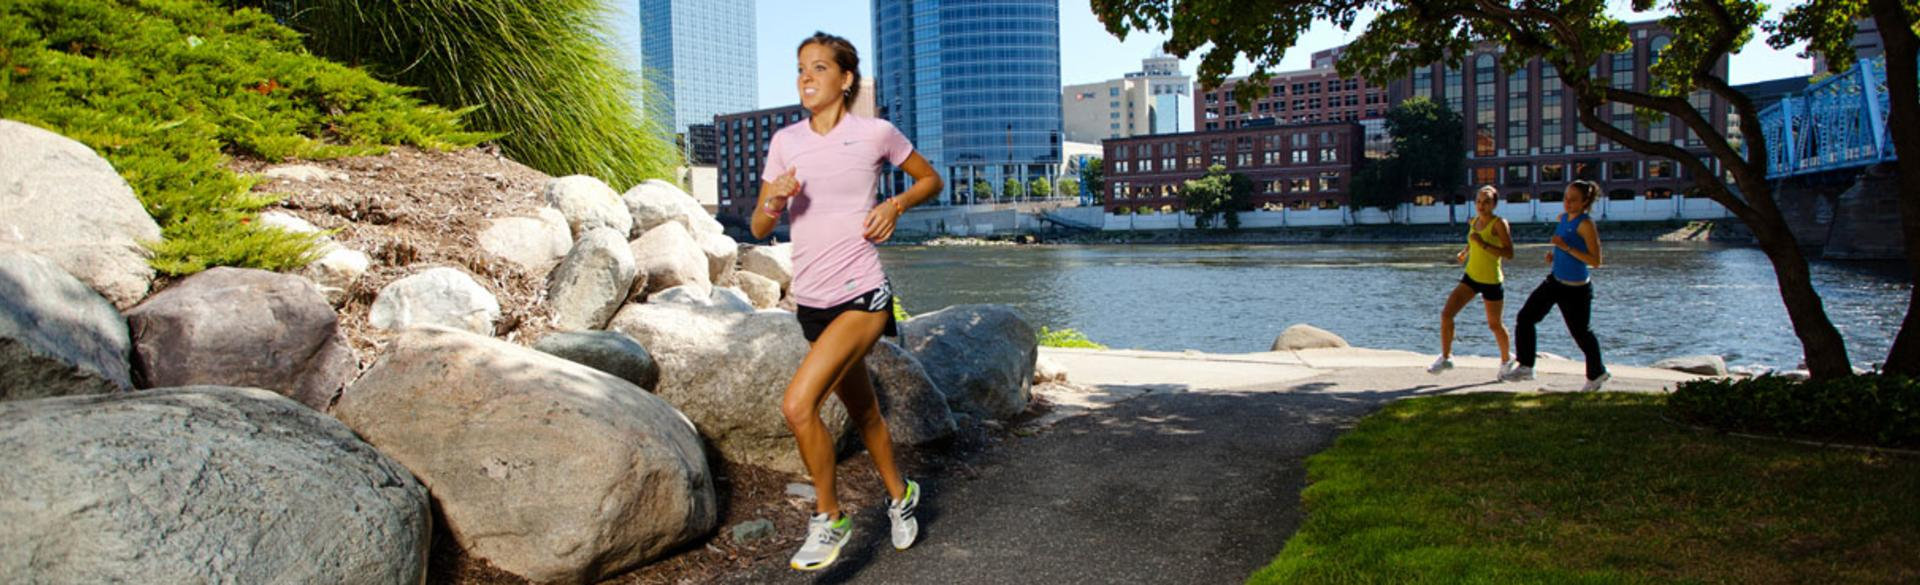 Runners in Grand Rapids